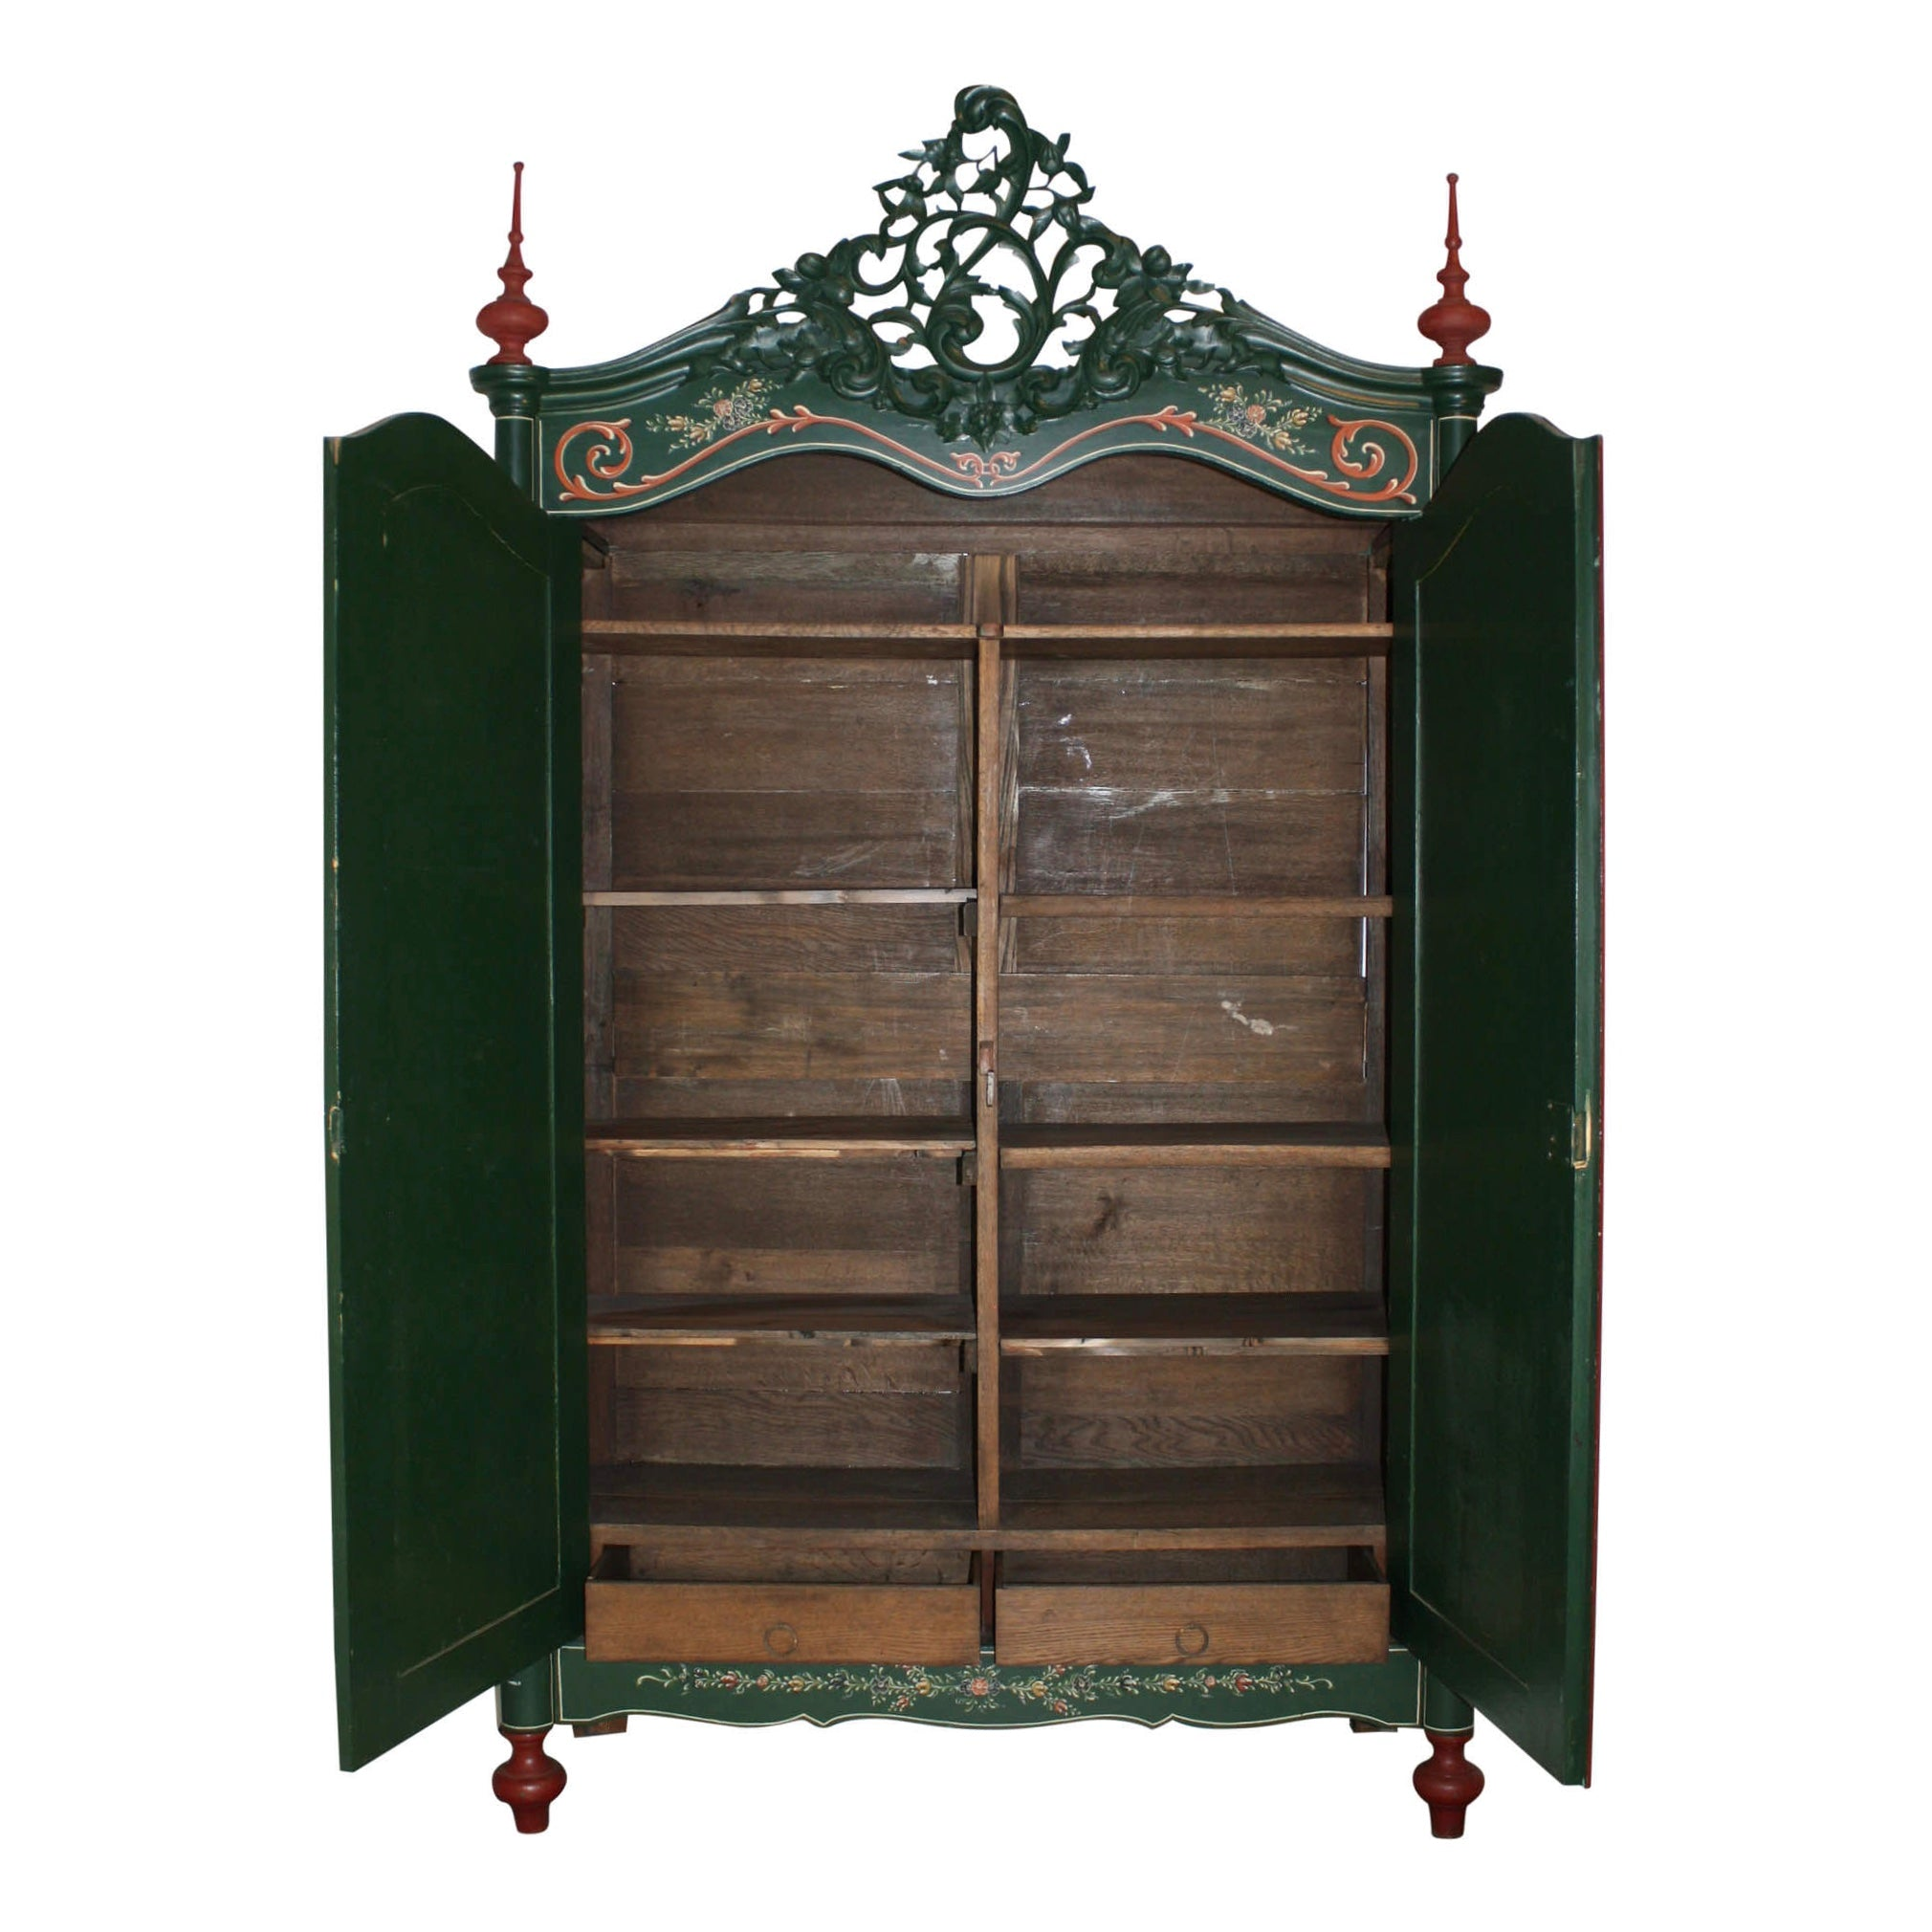 William III Painted Dutch Wardrobe